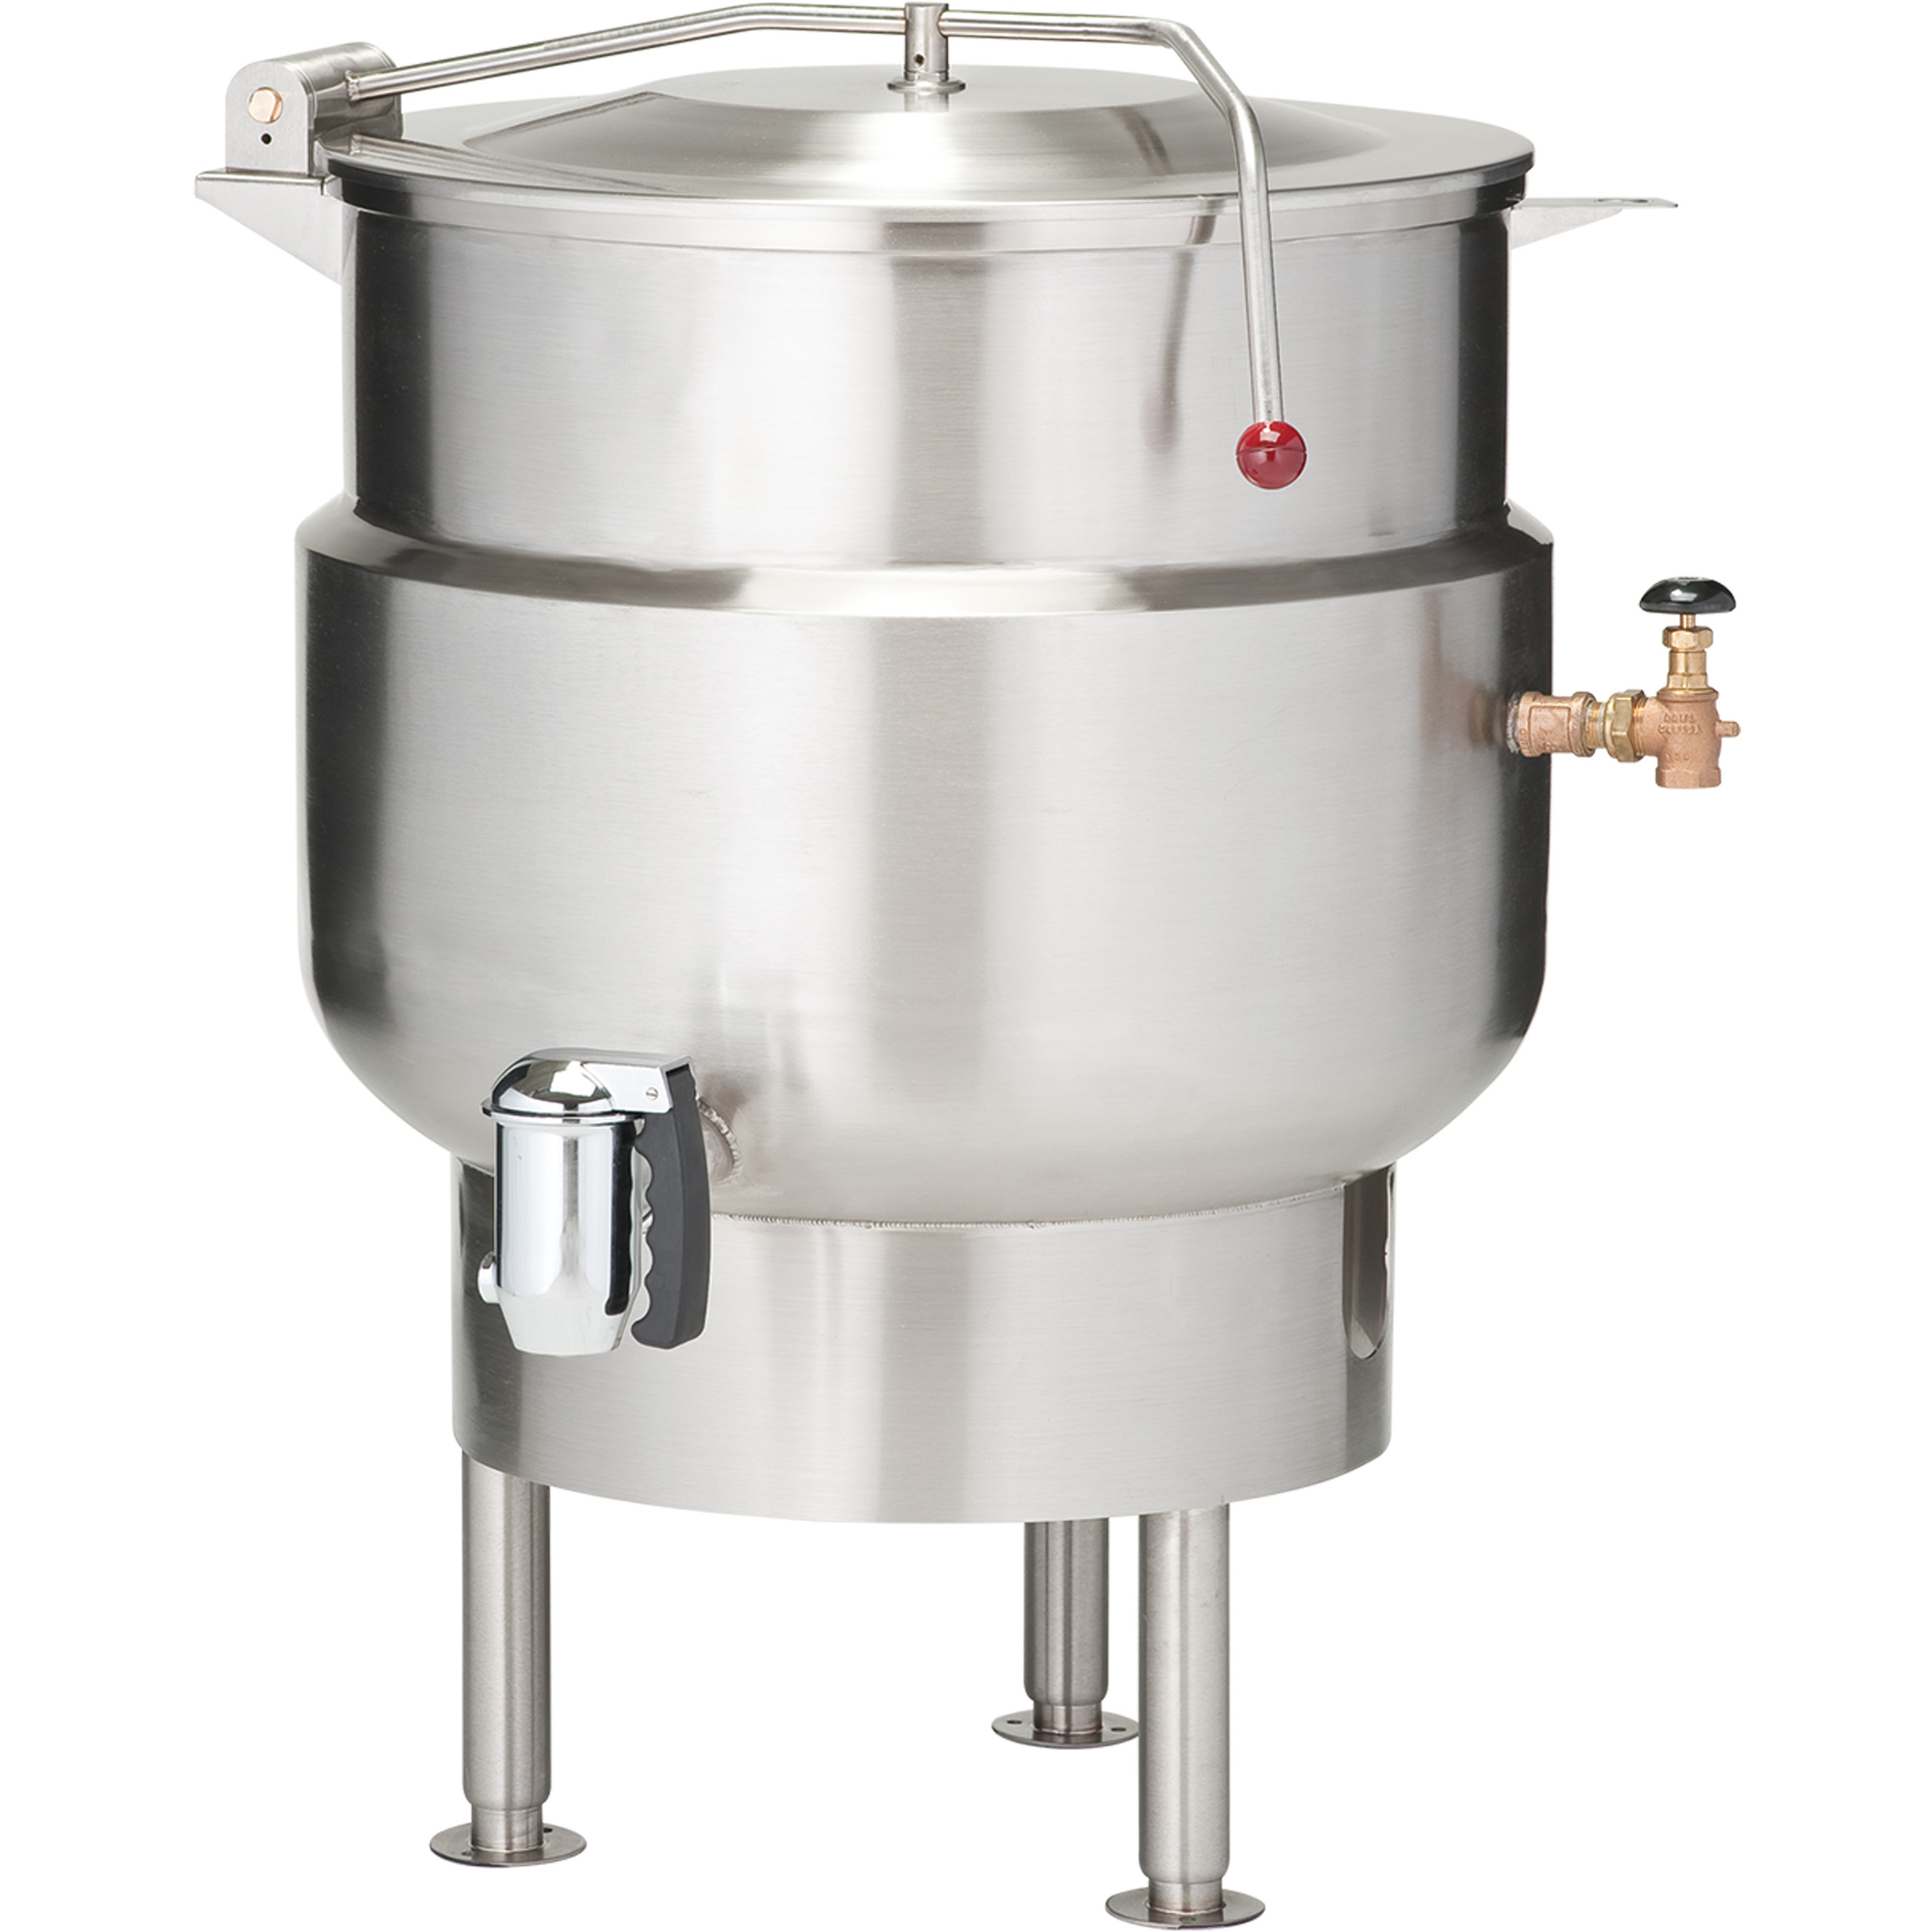 Vulcan K60DLT kettle, direct steam, tilting